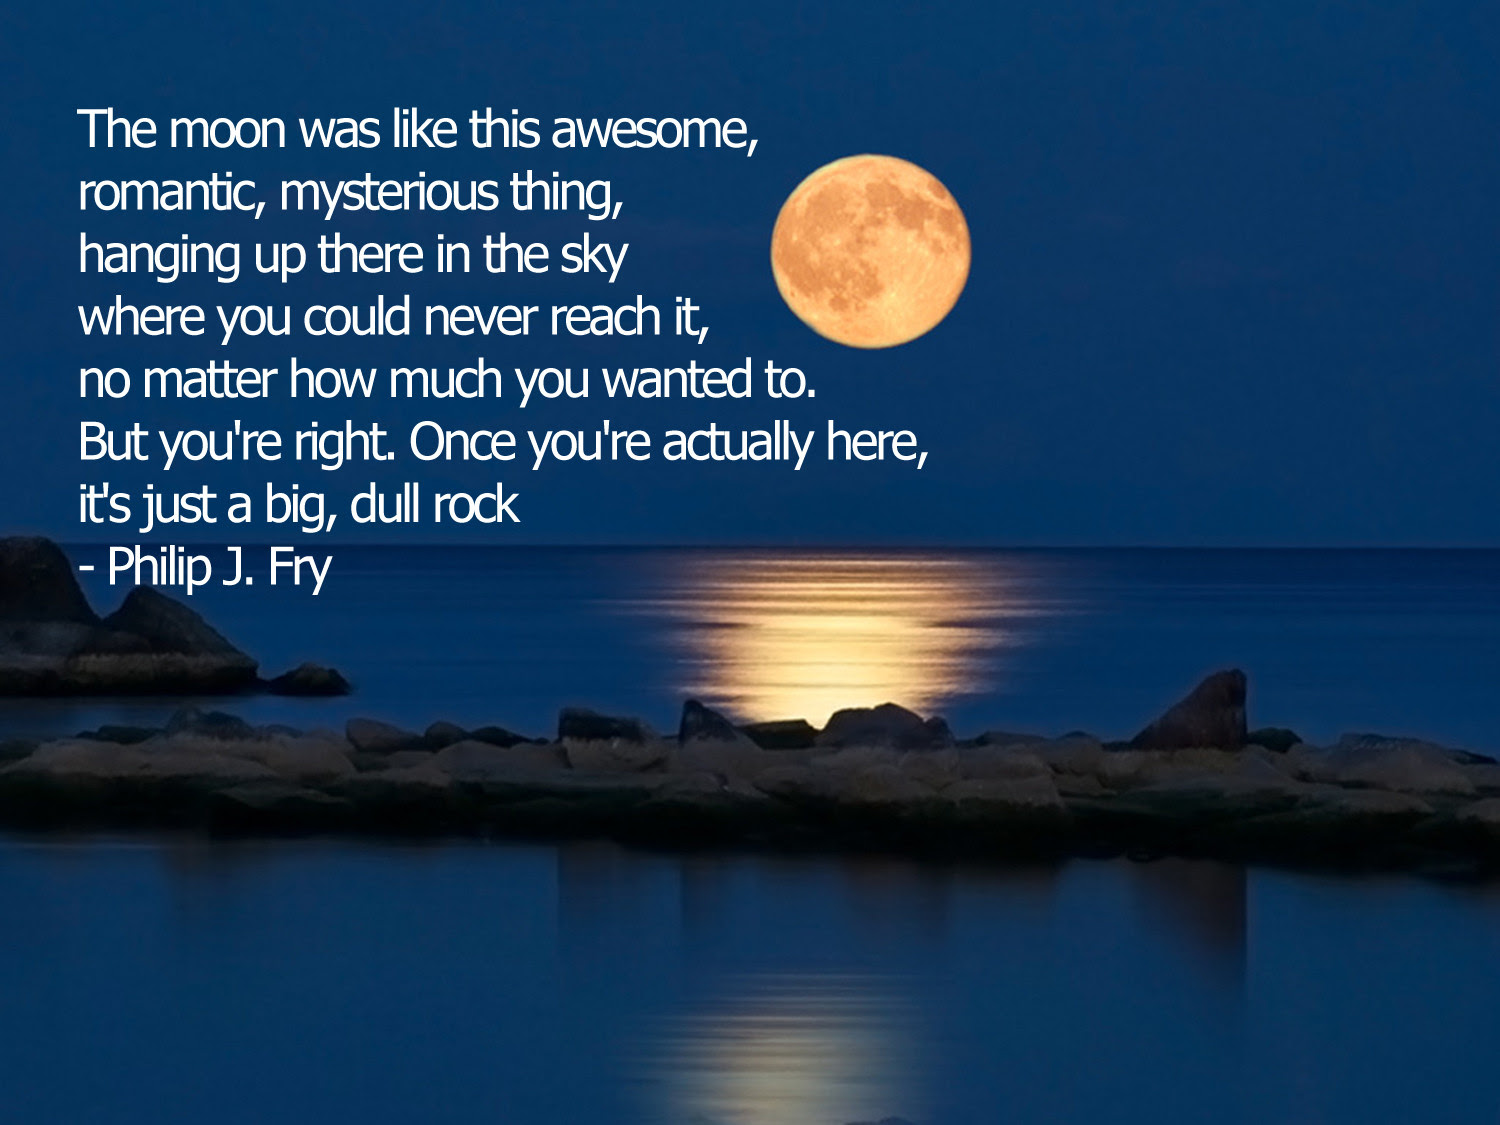 The Moon Was Like This Awesome Romantic Philip J Fry